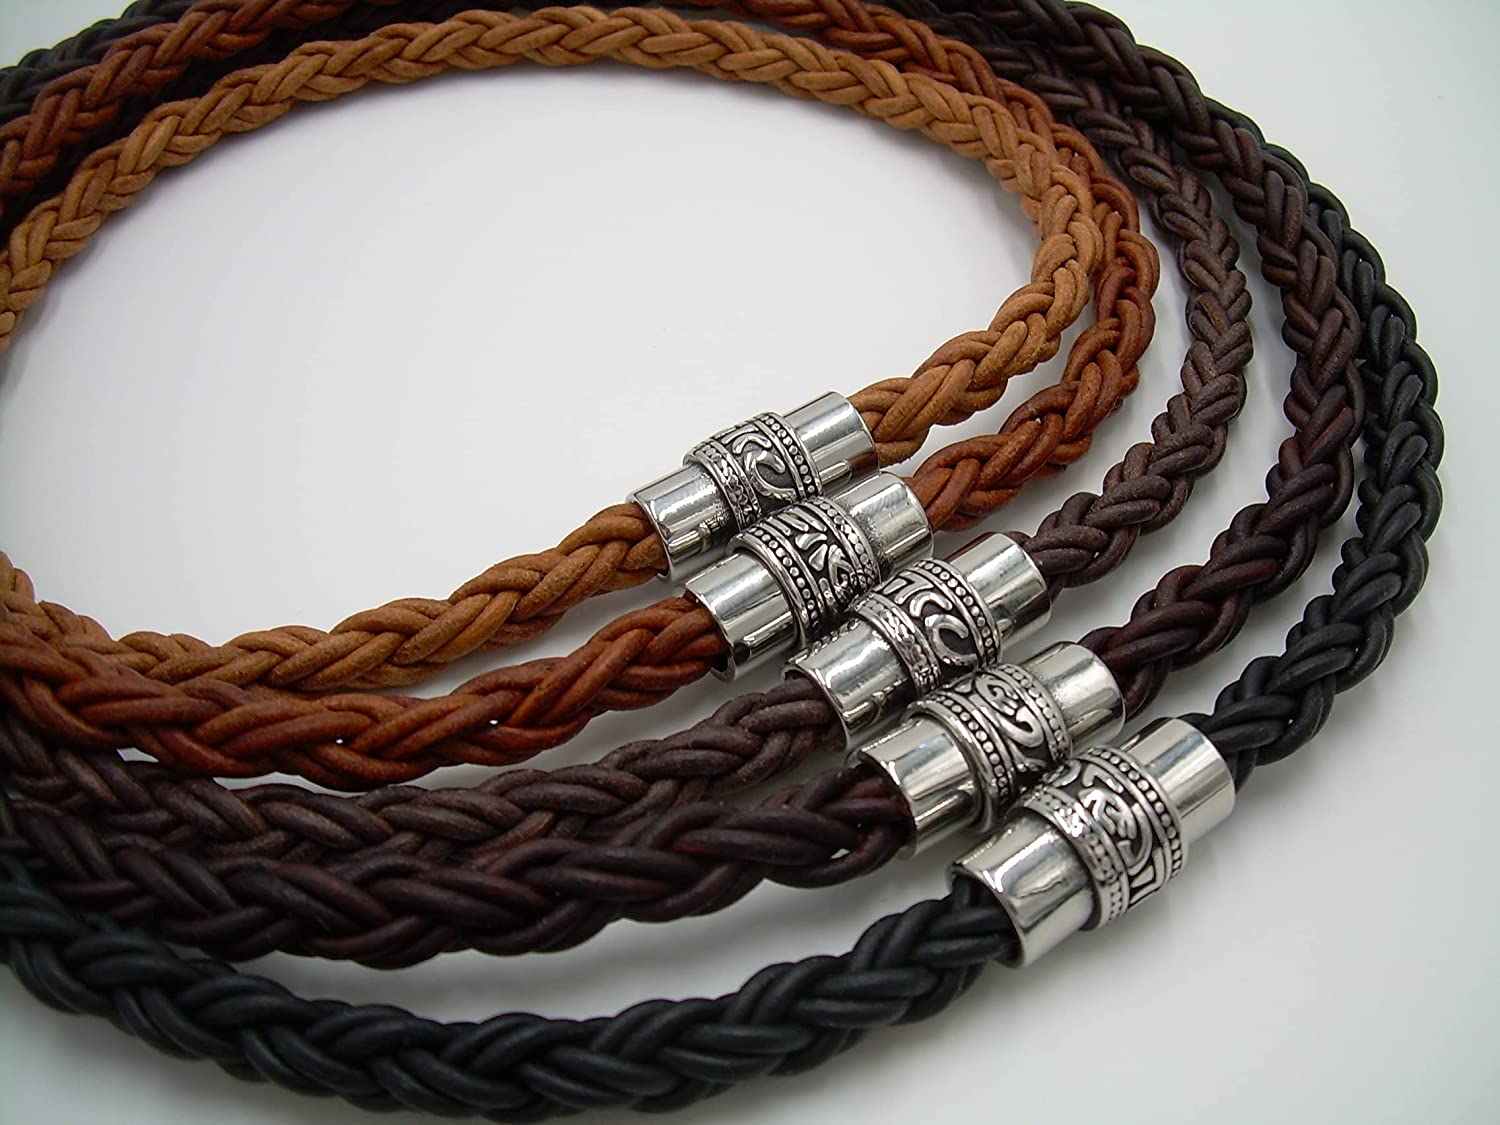 Handmade Mens Max 90% OFF Thick Braided Leather Stai Lowest price challenge with Necklace Filigreed